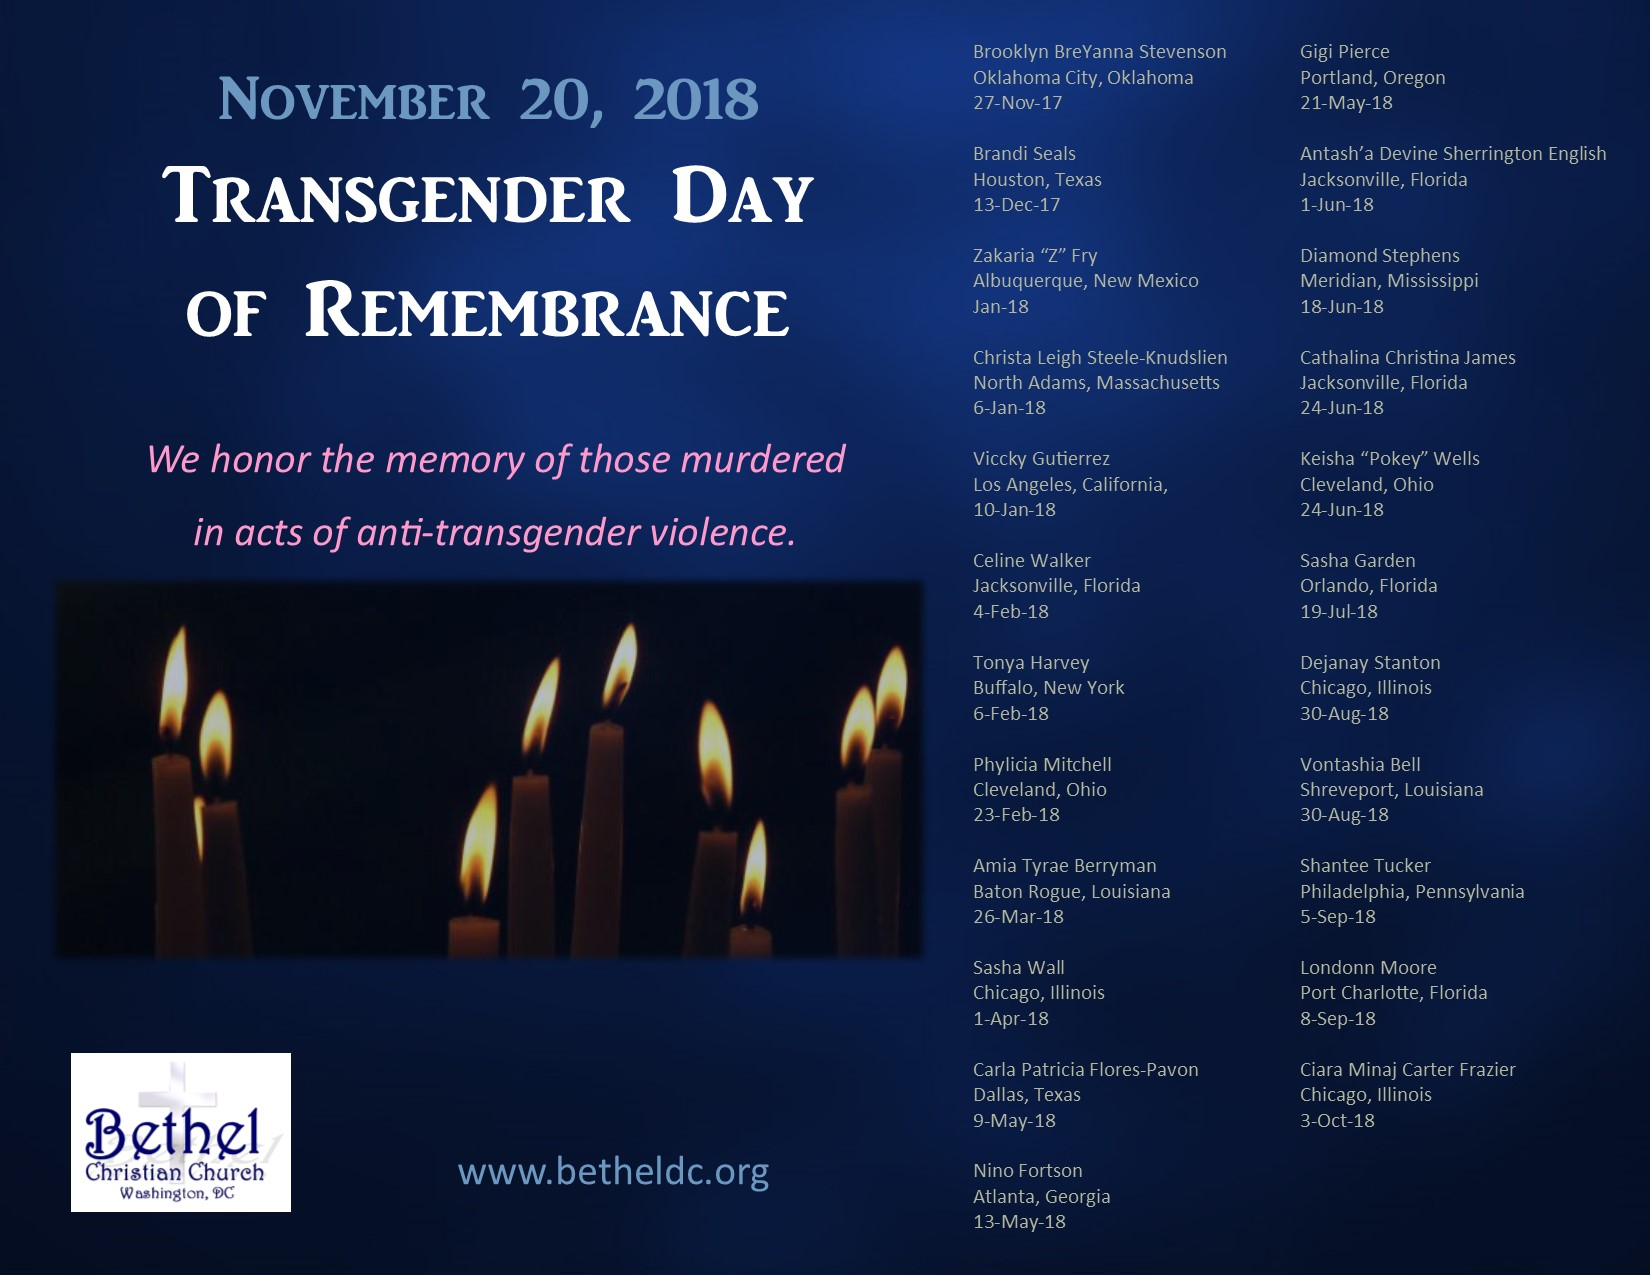 November 20, 2018 - Transgender Day of Remembrance. We honor the memory of those murdered in acts of anti-transgender violence.